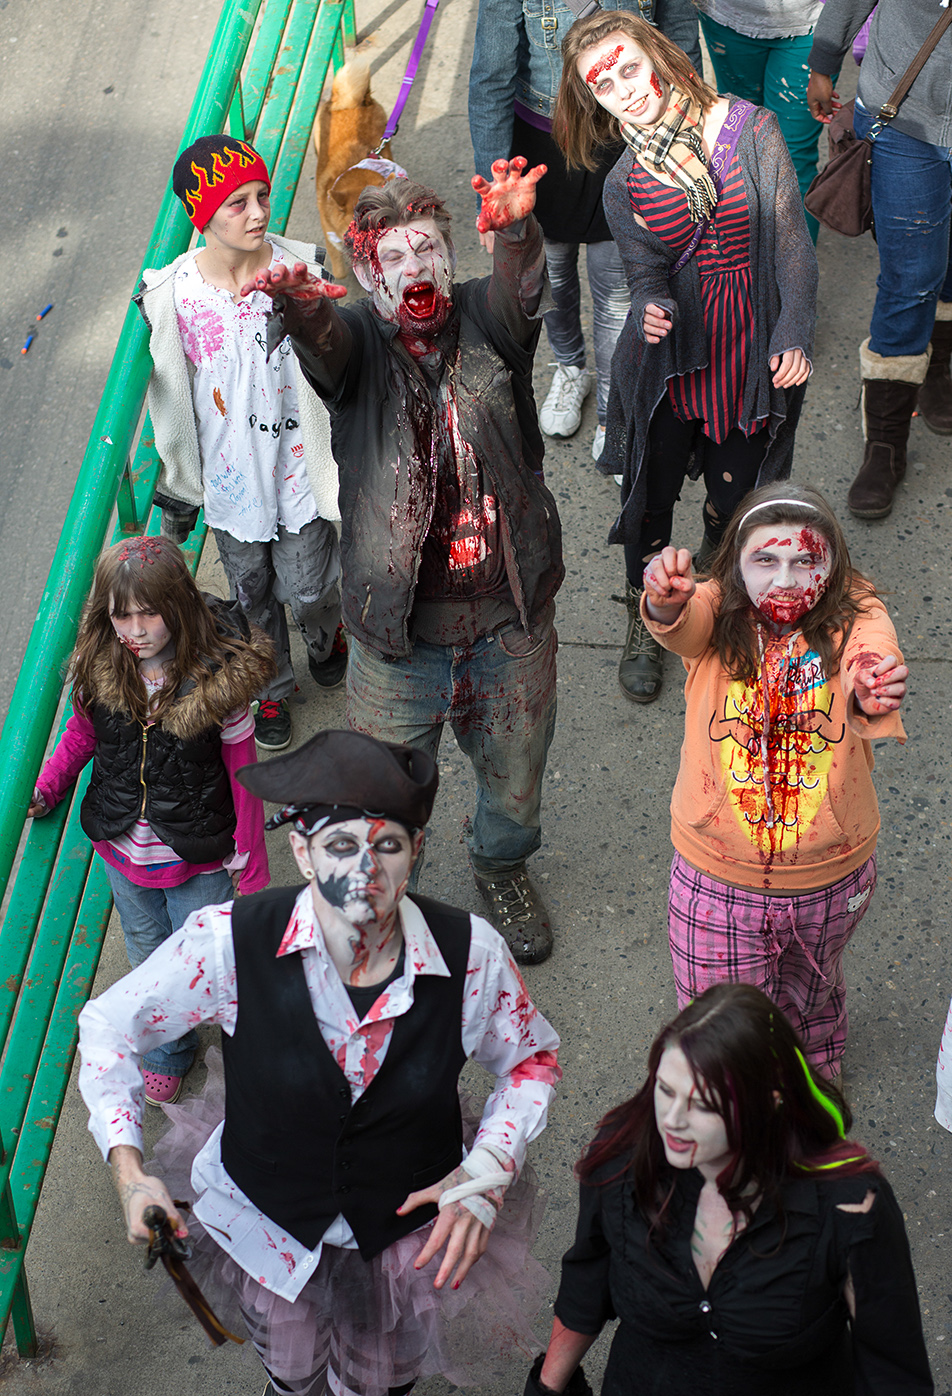 Zombie Apocalypse: Zombie Walk participants search for brains as they march down 4th Street in downtown Calgary on Saturday, Oct. 12, 2013. Hundreds gathered for the walk, dressed in their scariest zombie costumes to parade down Stephen Ave. (Photo by Jenn Sieppert/The Press)